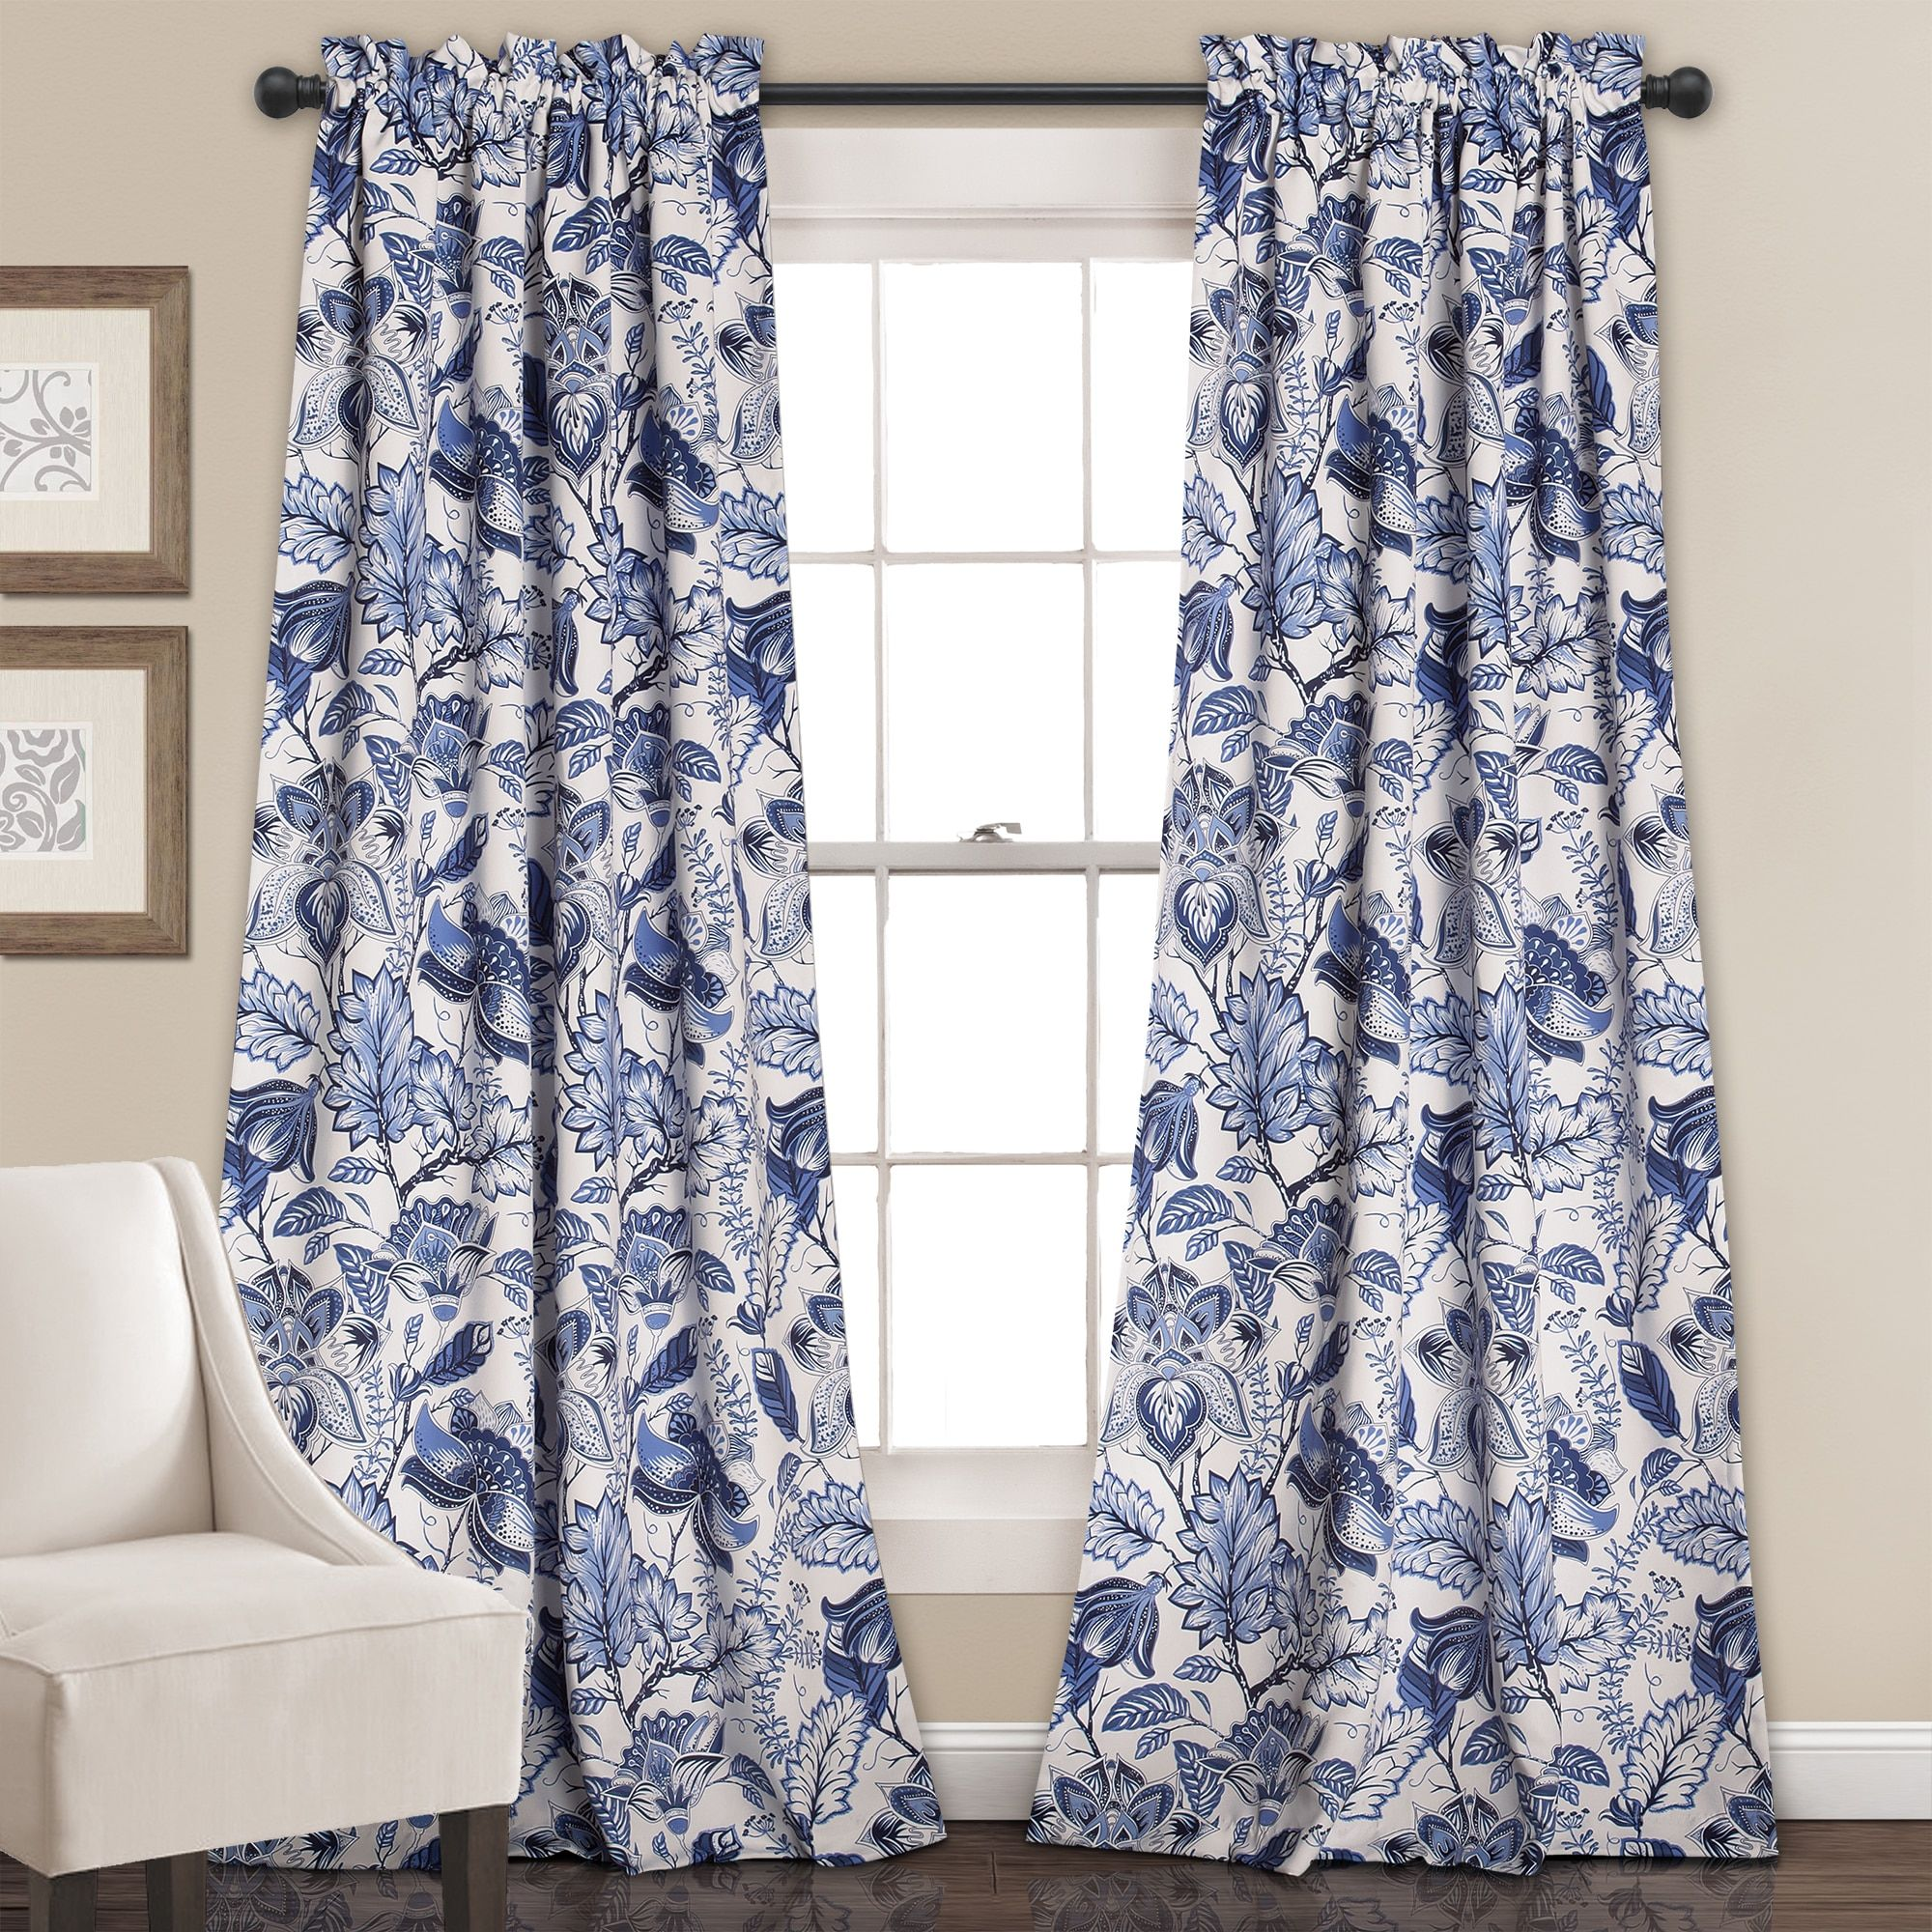 Overstock Com Online Shopping Bedding Furniture Electronics Jewelry Clothing More Floral Curtains Curtains Room Darkening Curtains